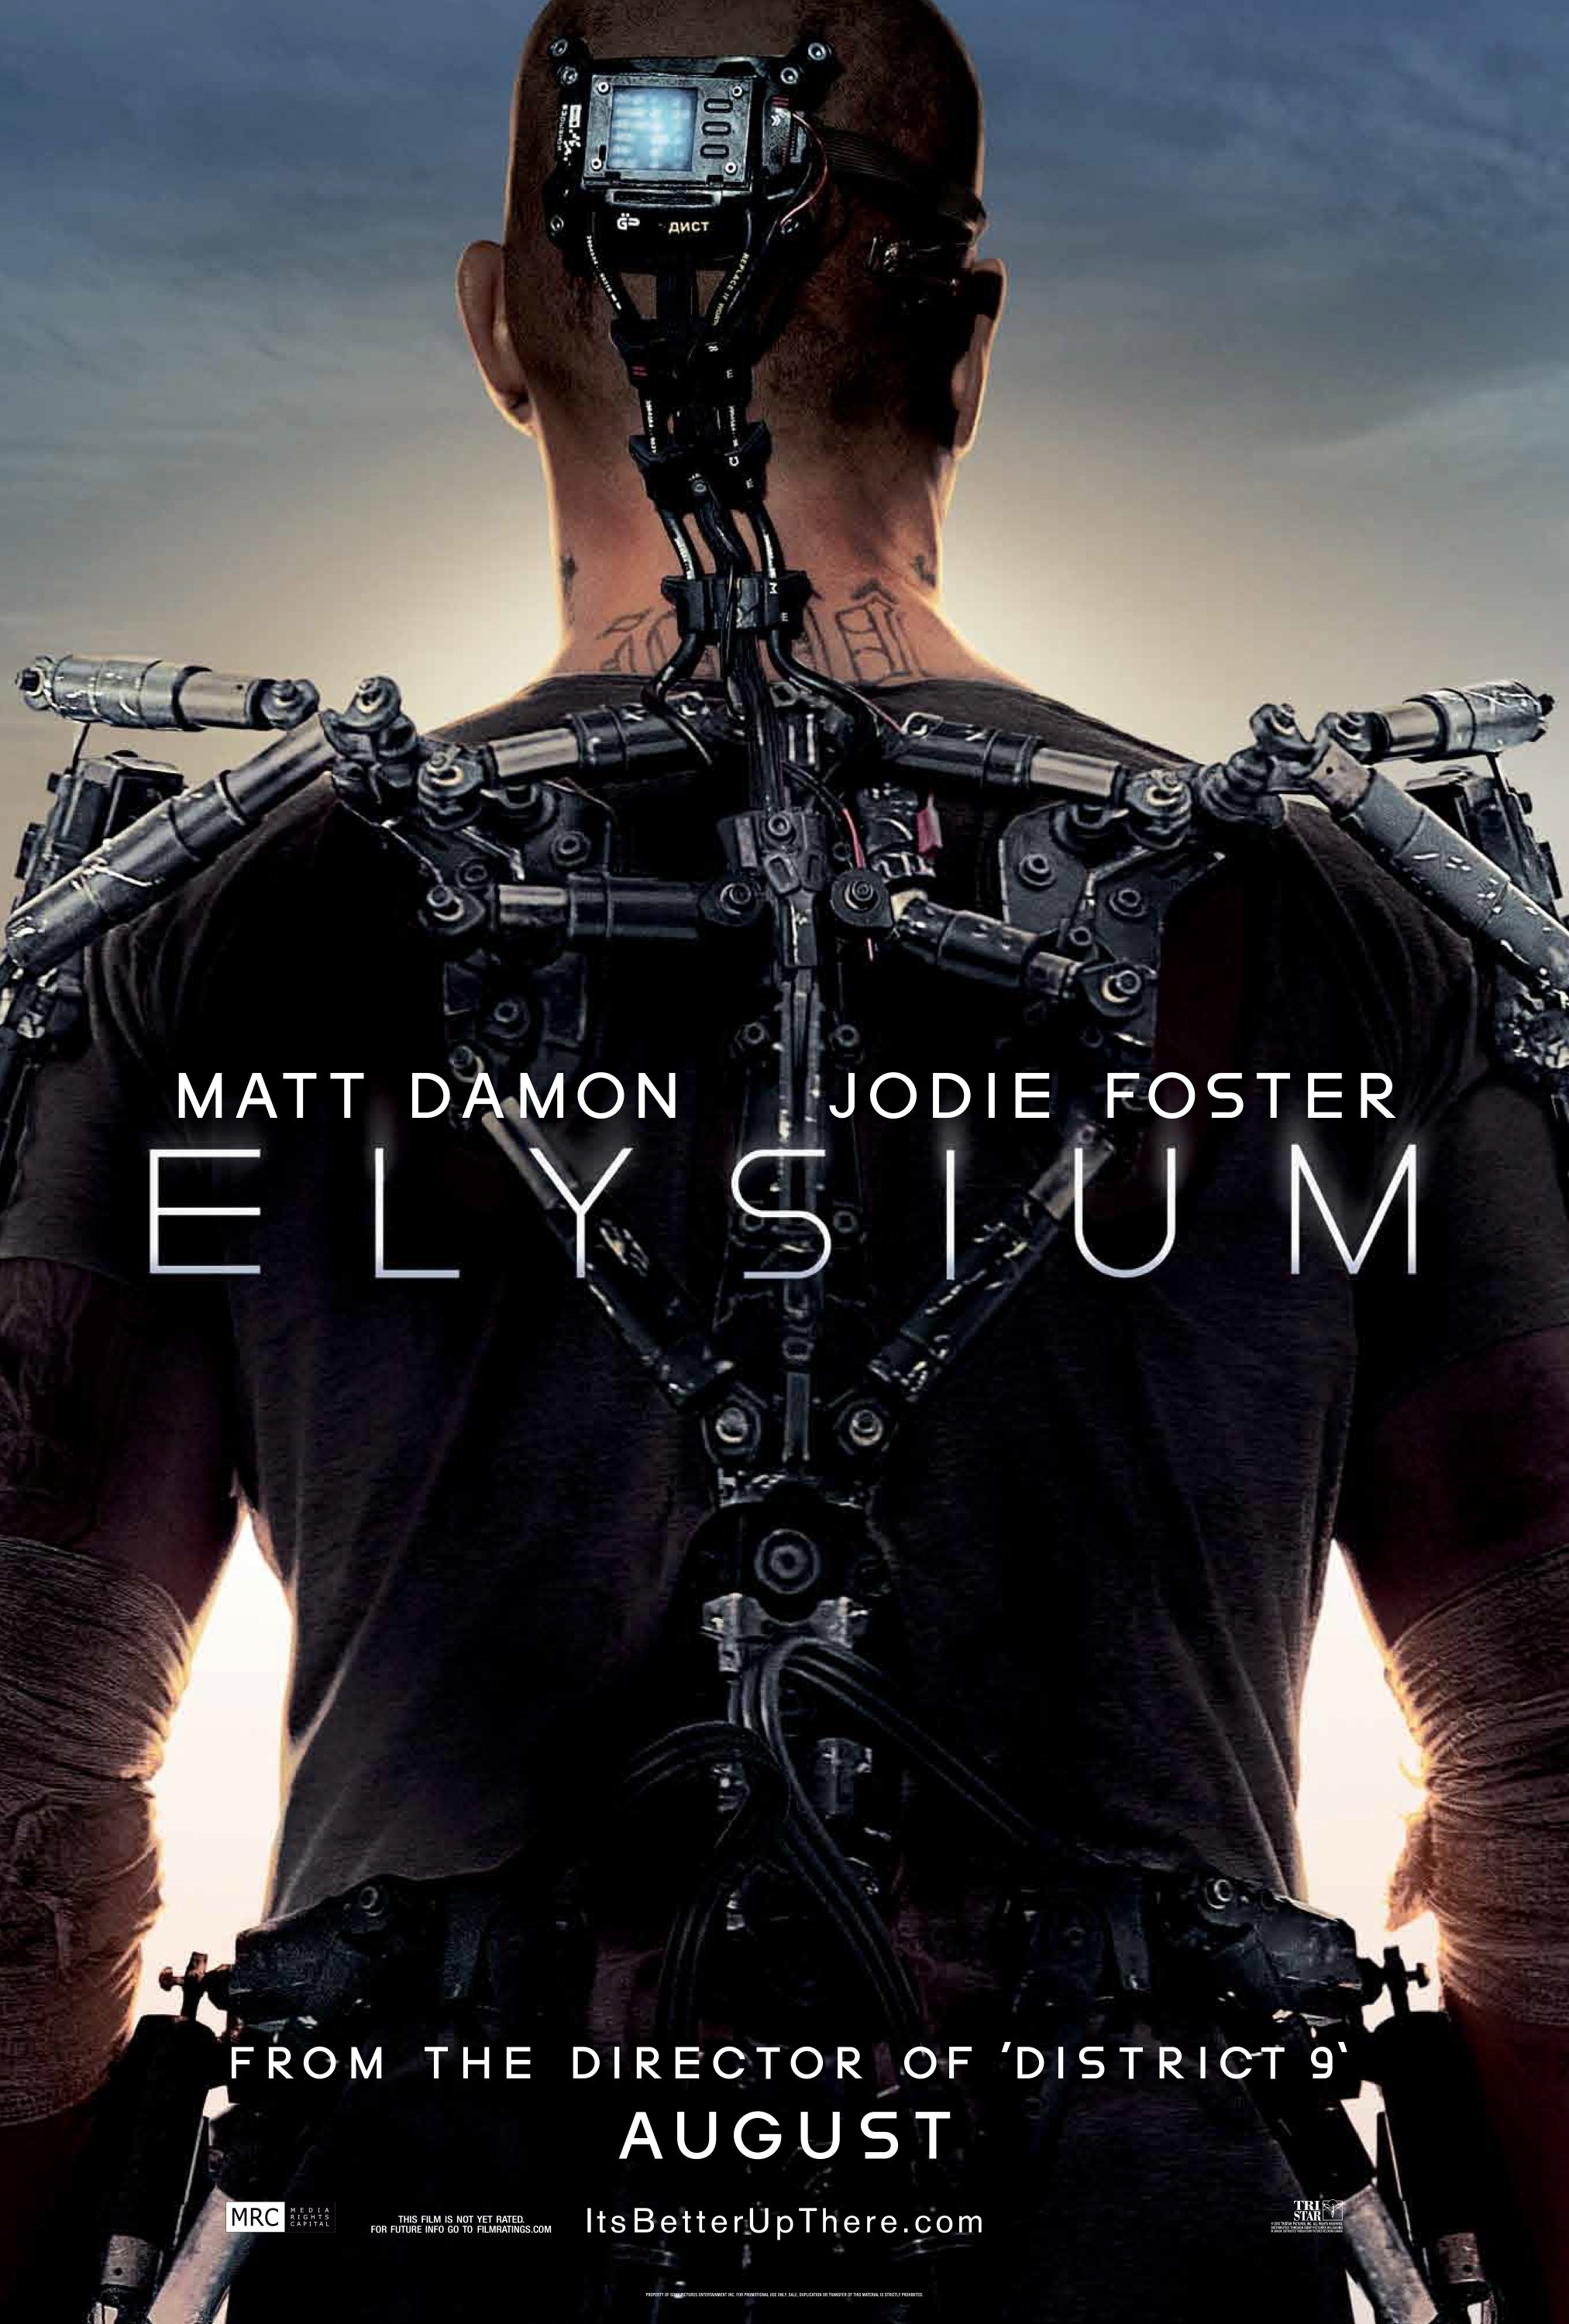 Explore the World of 'Elysium' in the First Trailer for Neill Blomkamp's District 9 Follow-Up